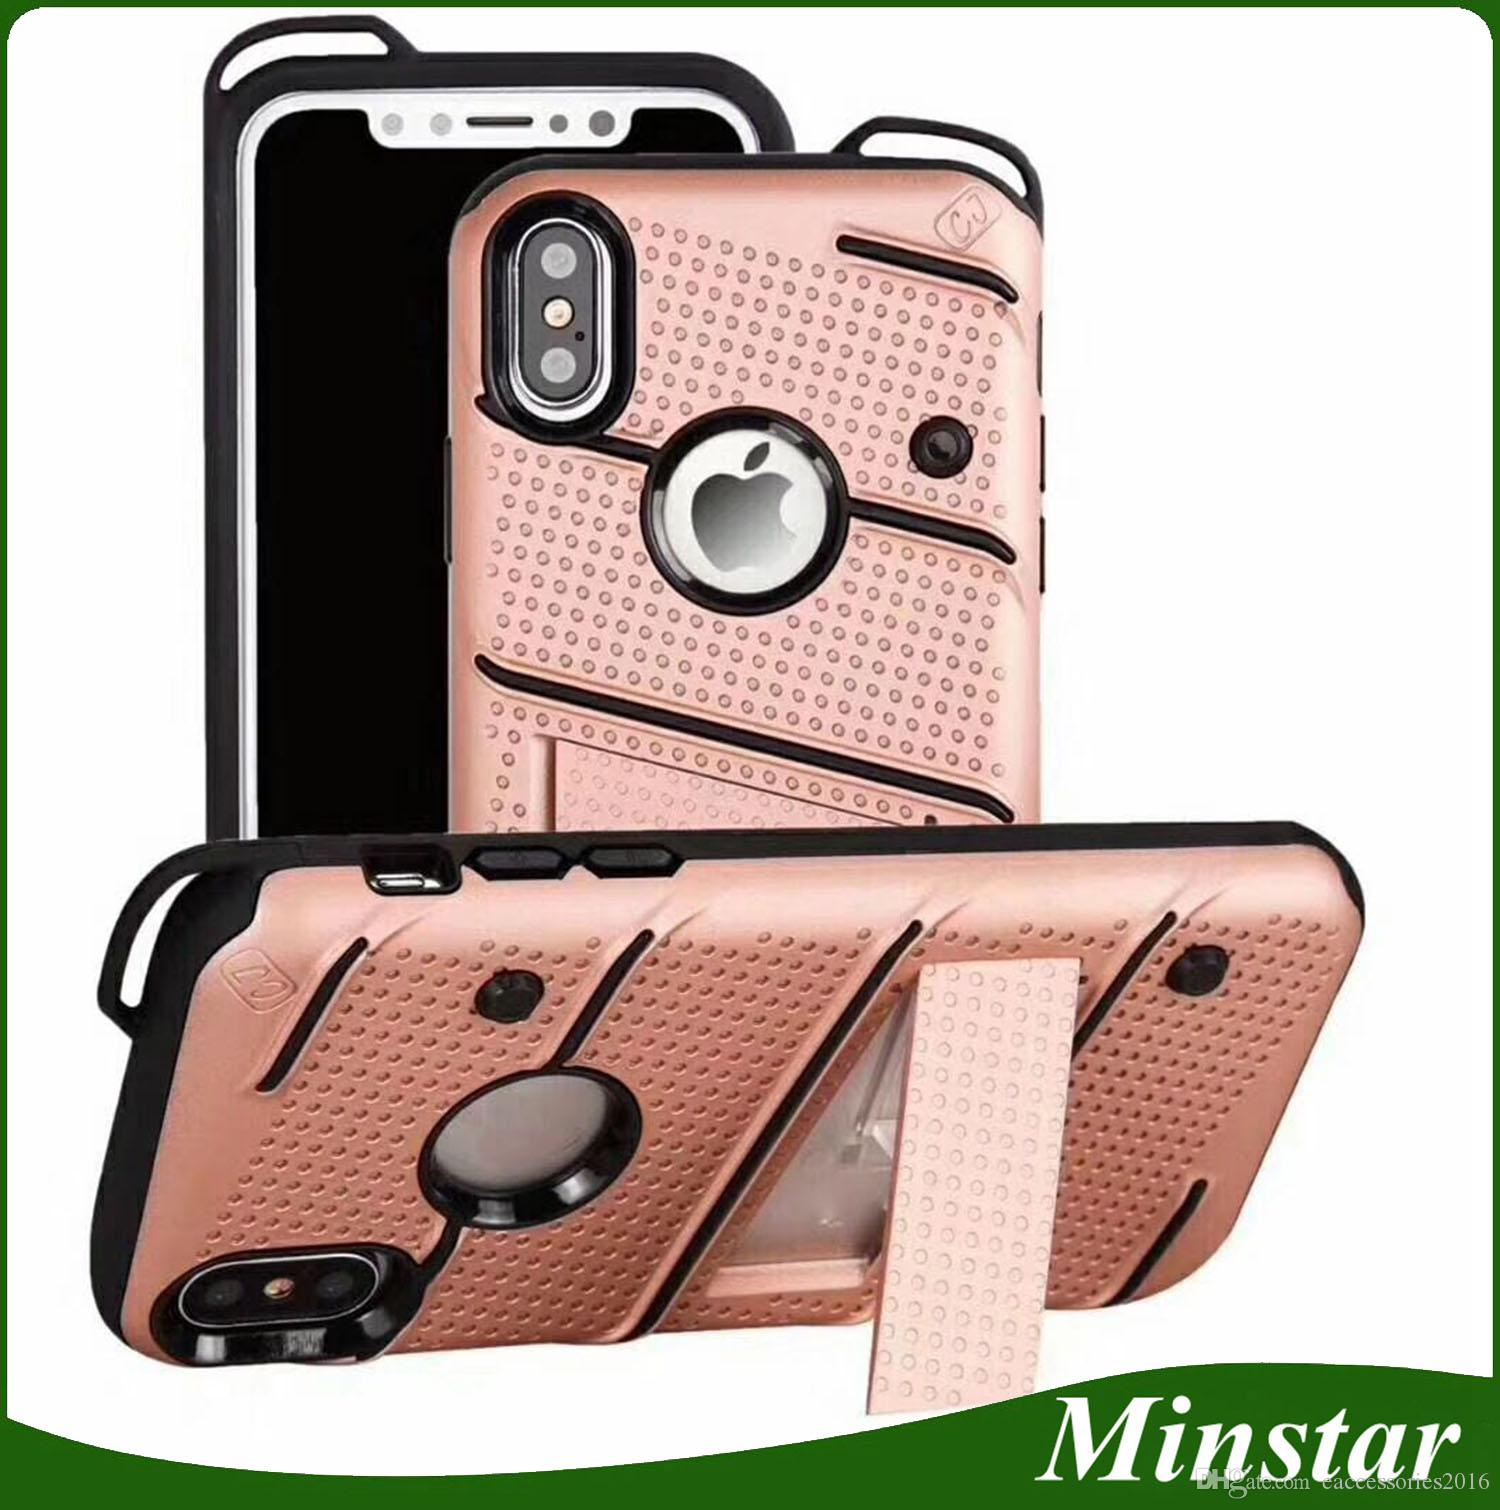 2018 Hottest New Models For Samsung Phone Case With Lanyard Hole S8 S9 Plus Note 8 Note 9 Case Kickstand Cover Best Phone Cases Buy Cell Phones From